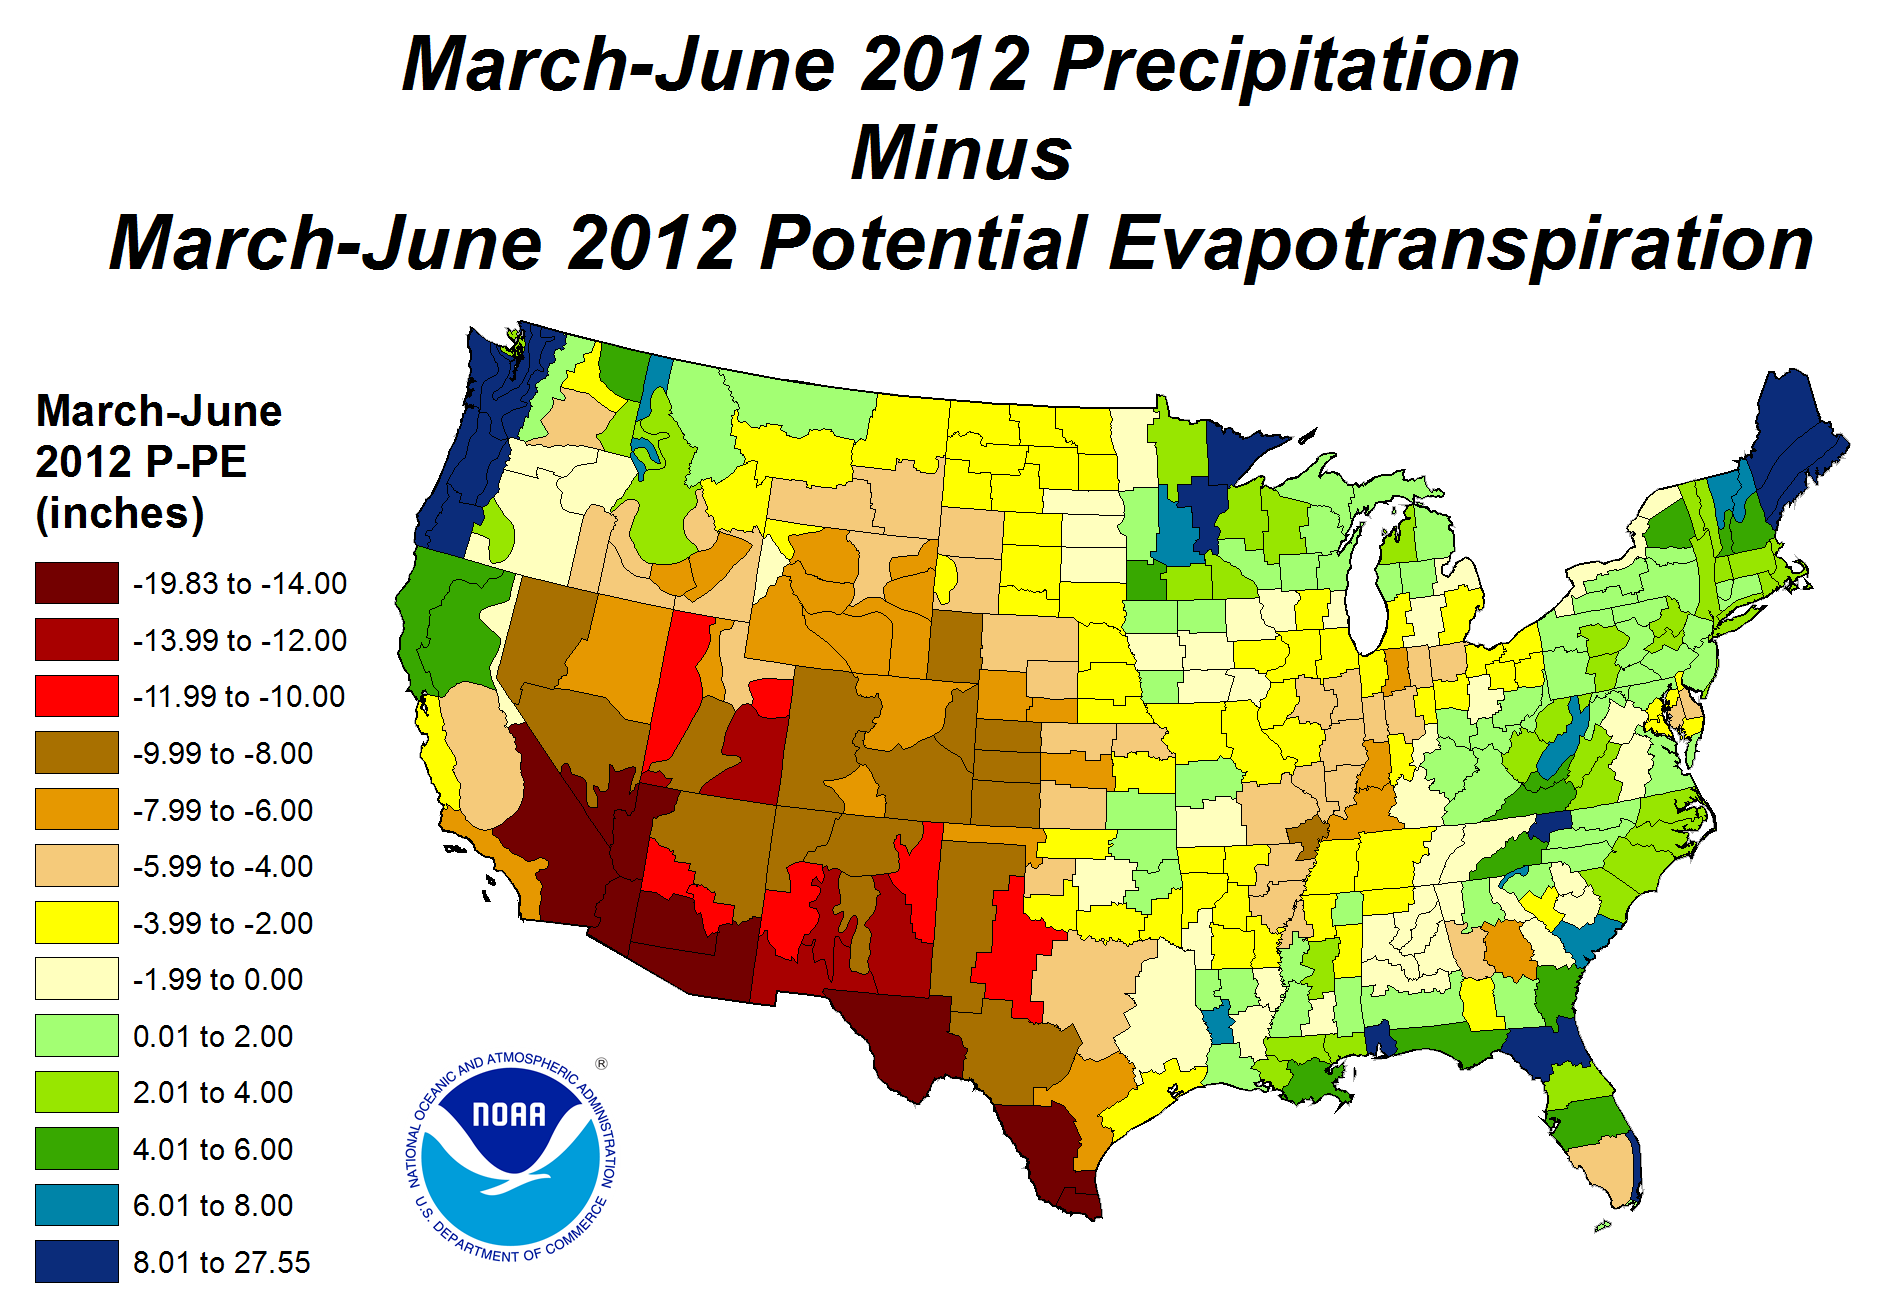 March-June 2012 Precipitation minus Potential Evapotranspiration ma